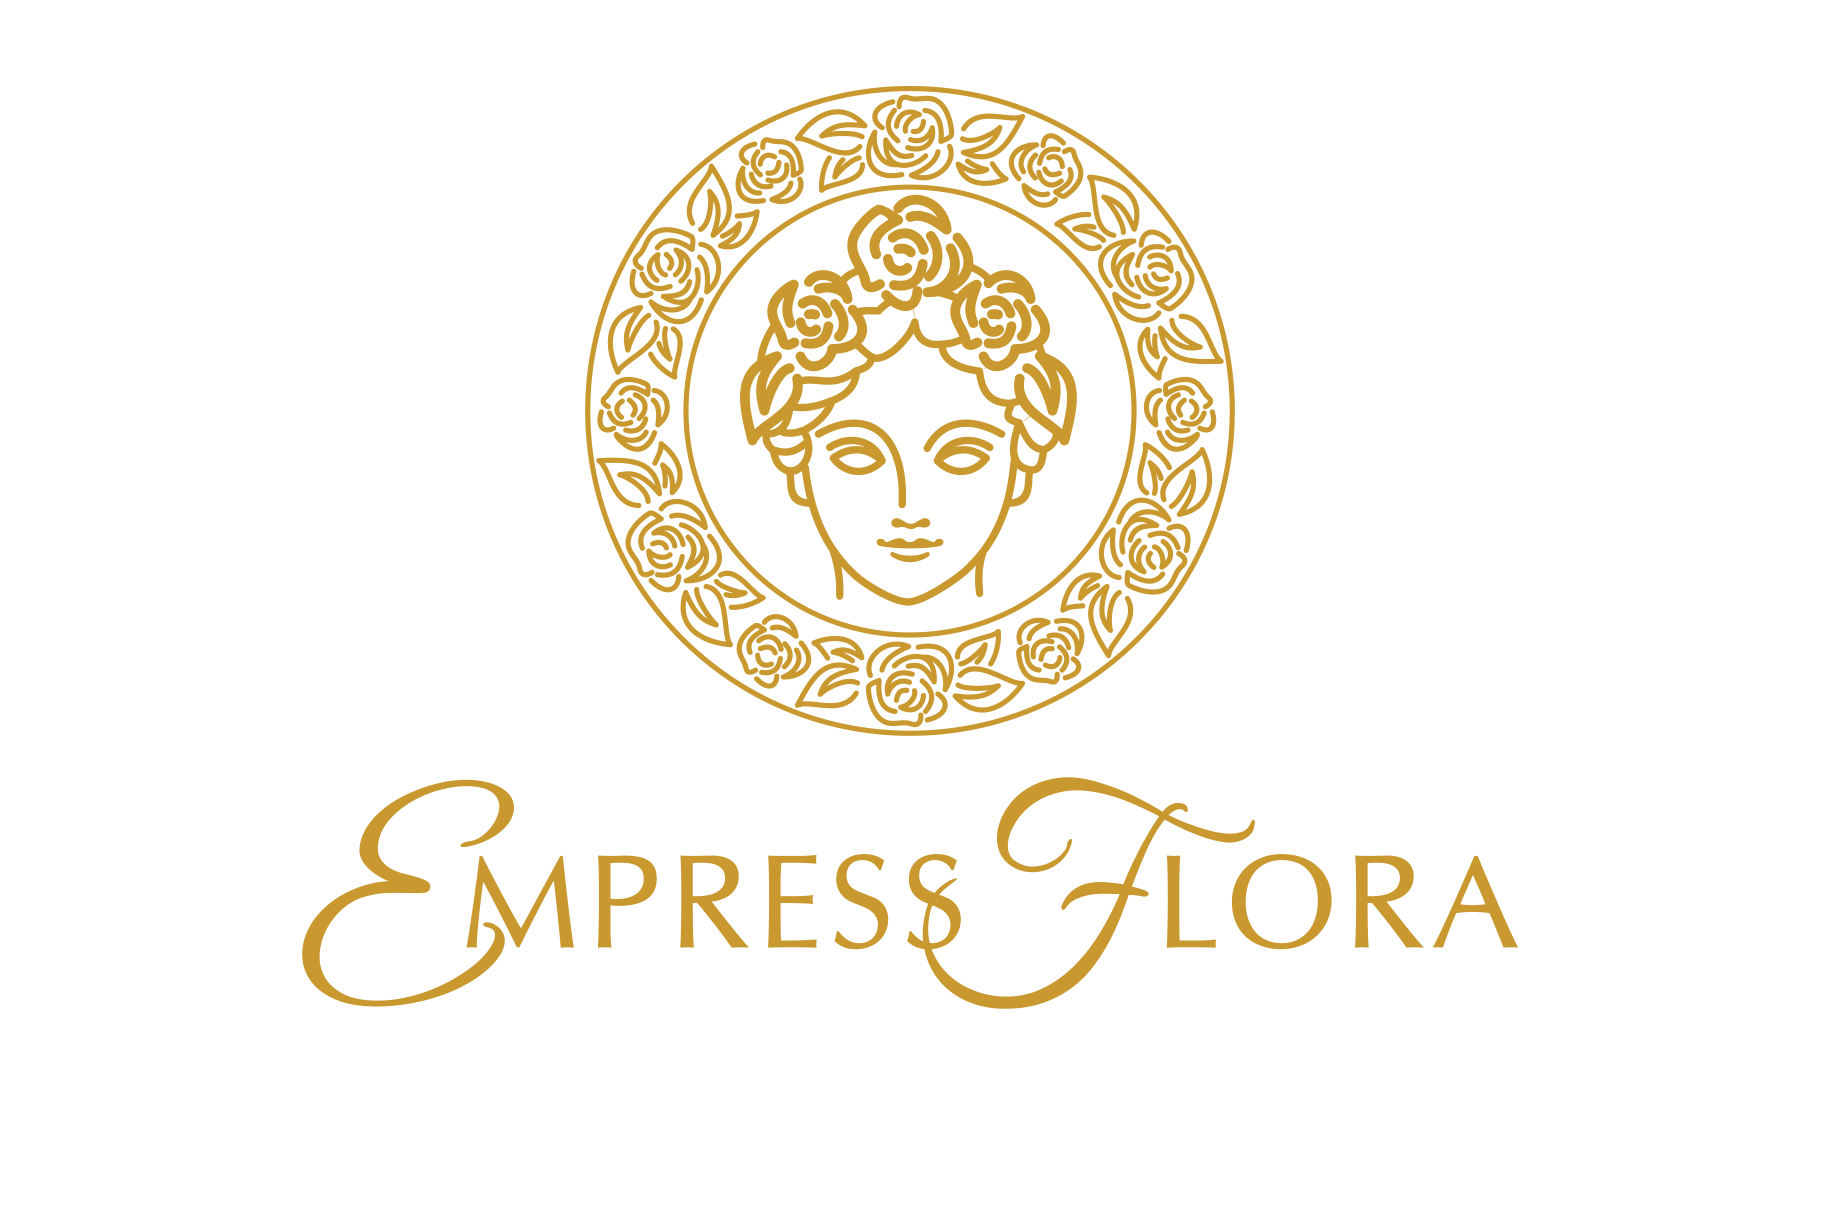 Empress Flora Launches New Line of Beautifully Preserved Rose Gift Boxes